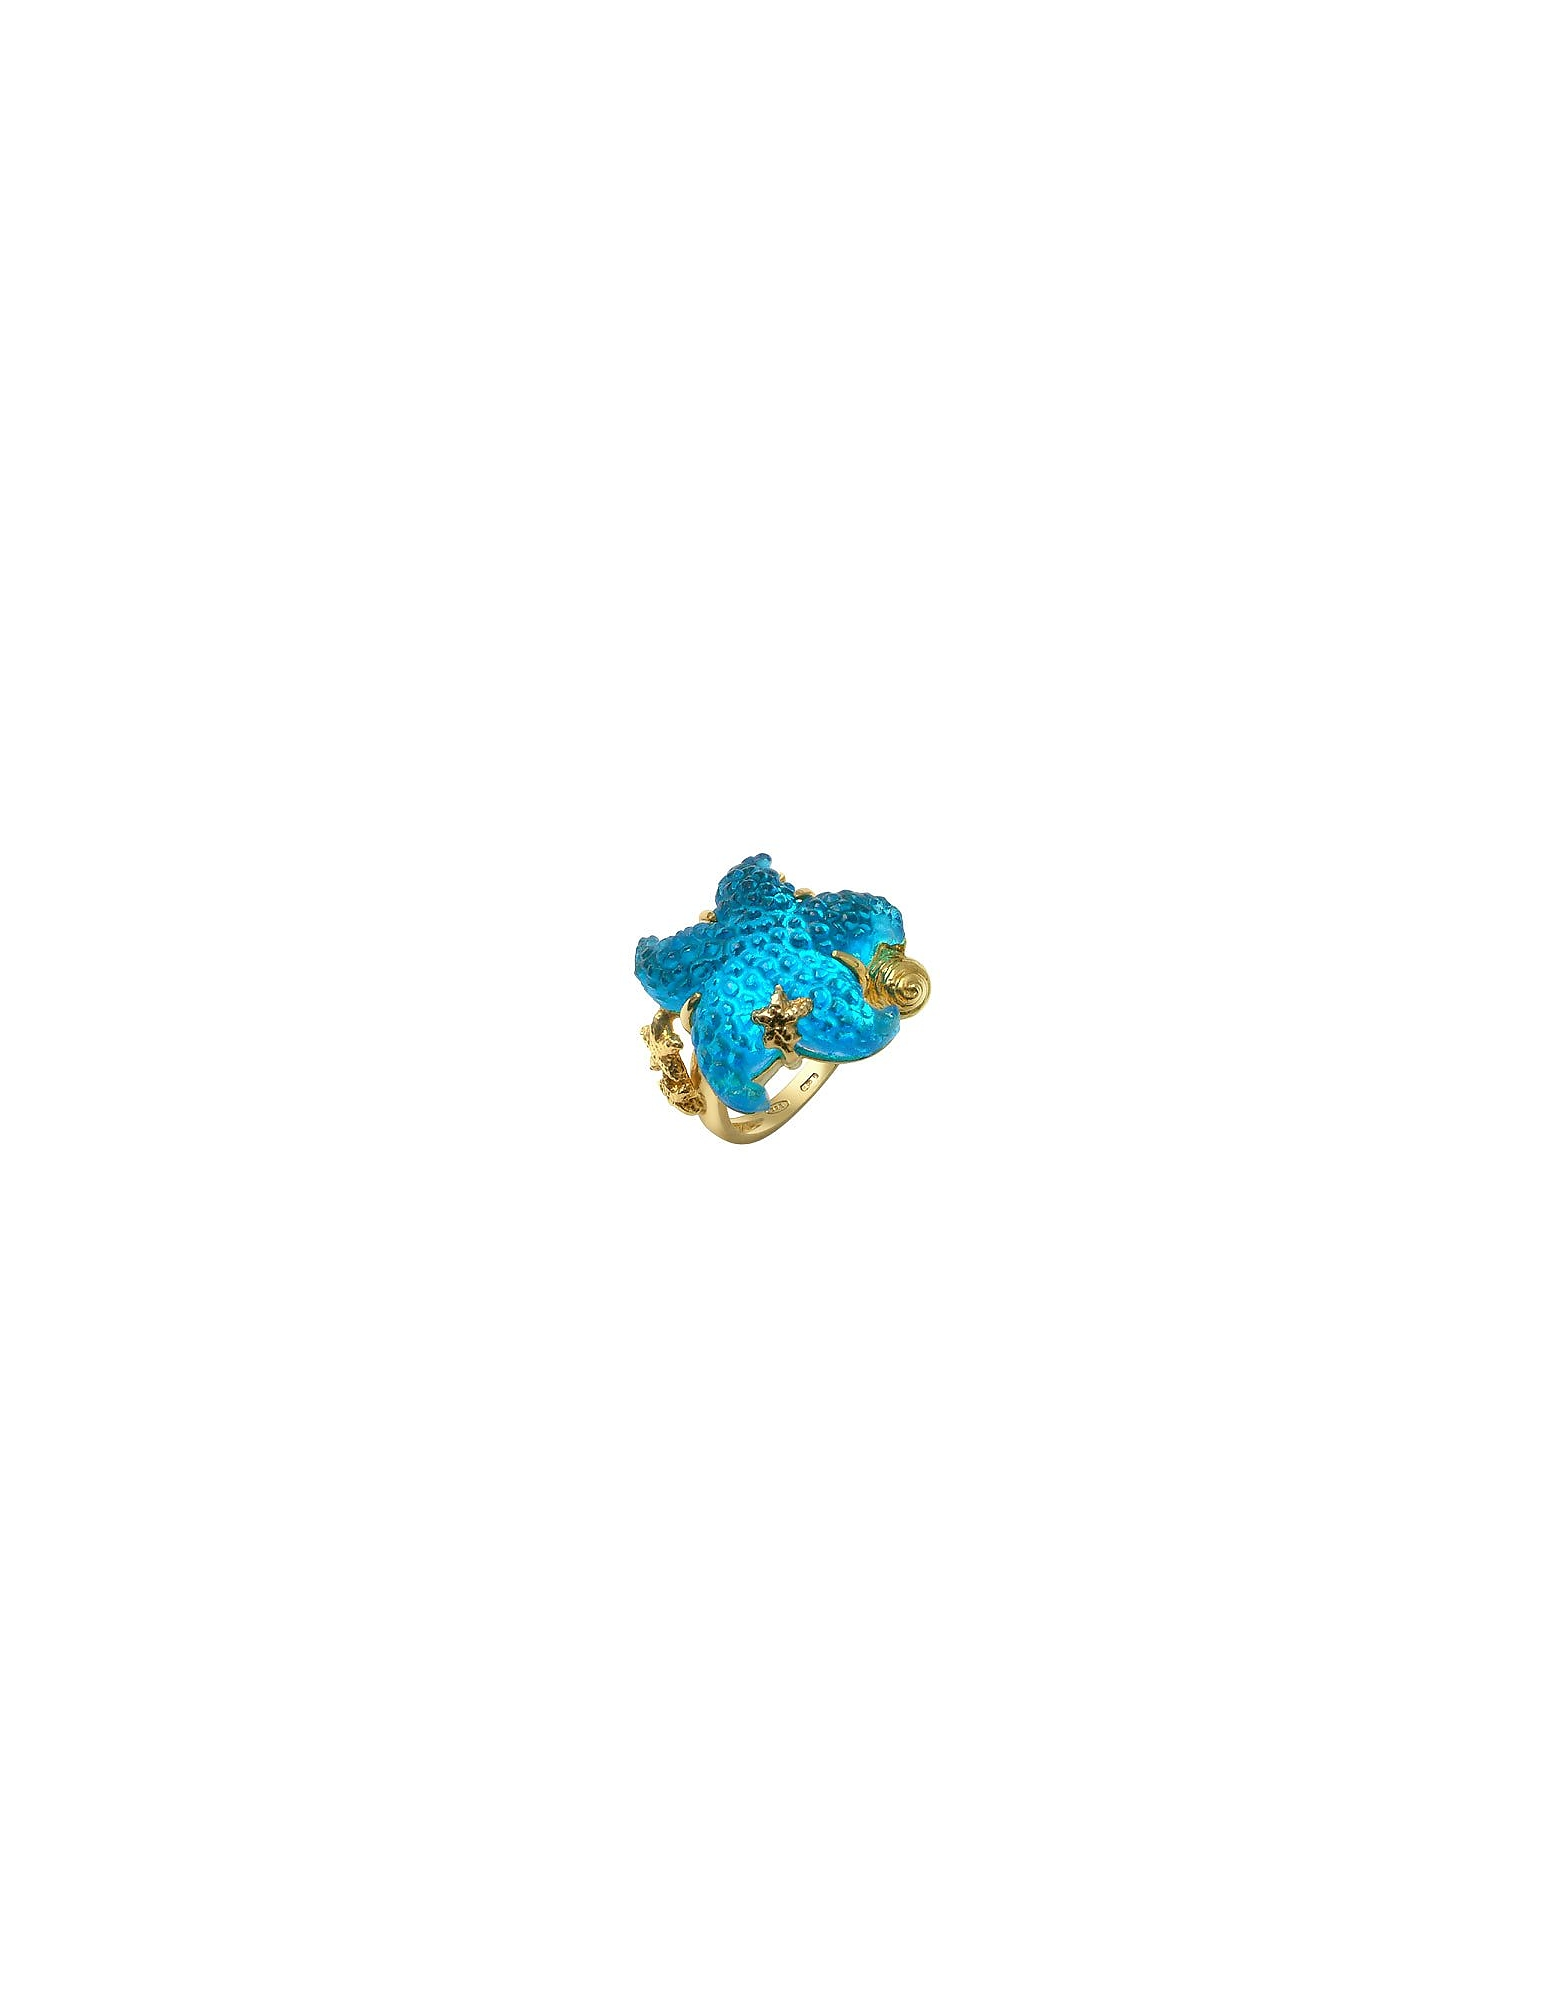 Tagliamonte Rings, Marina Collection - Blue Starfish 18K Gold Ring